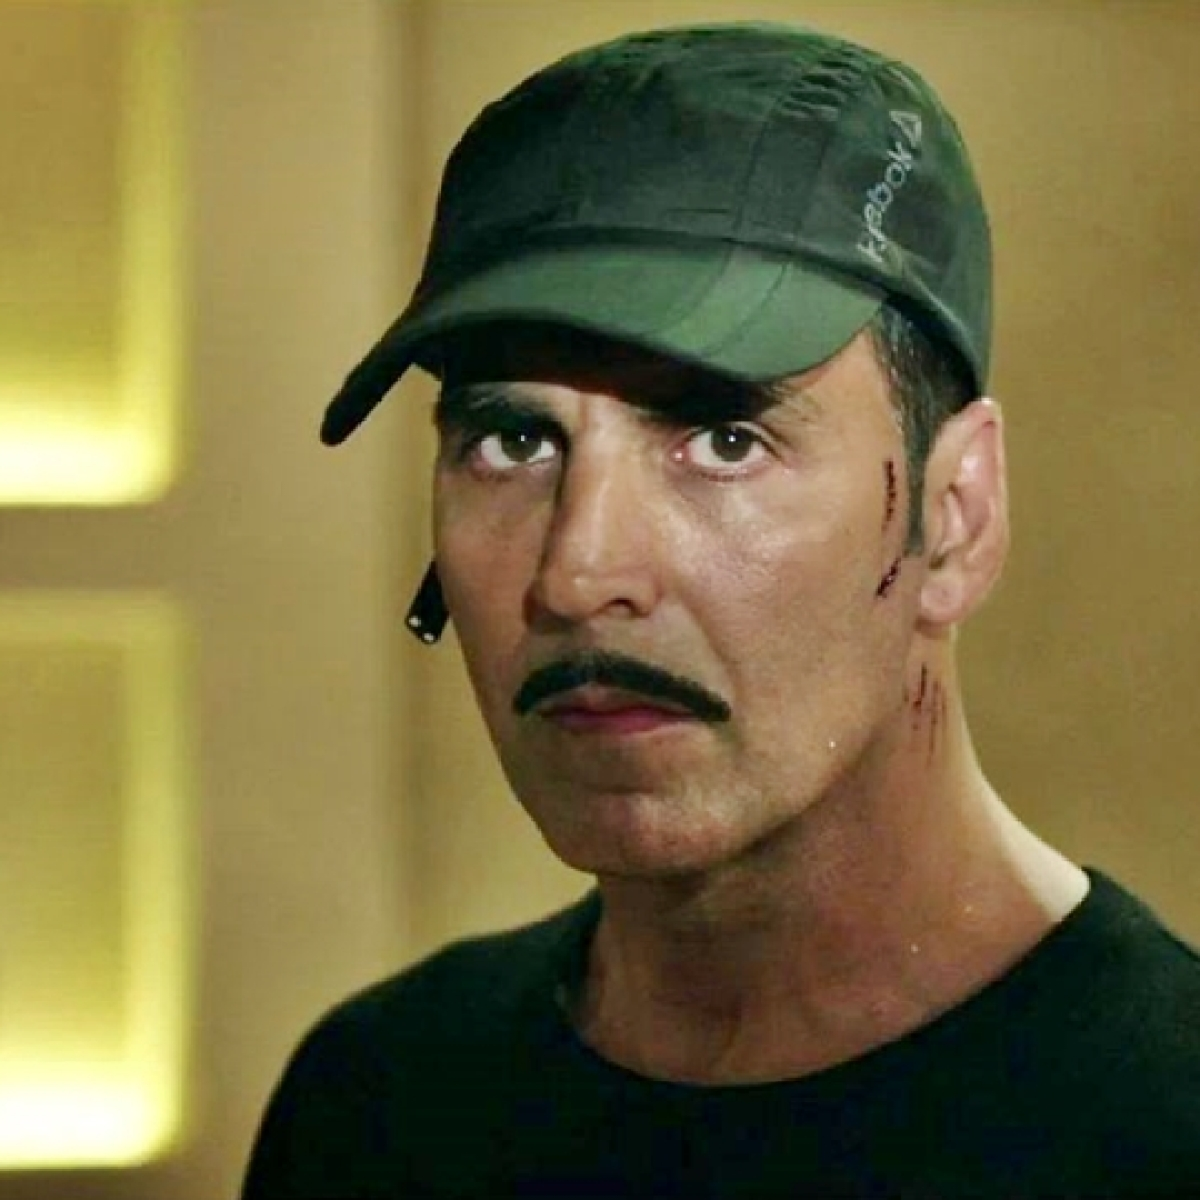 Watch: Old video of Akshay Kumar surfaces in which he says 'not just Pakistan, there's terrorism in India and America too'